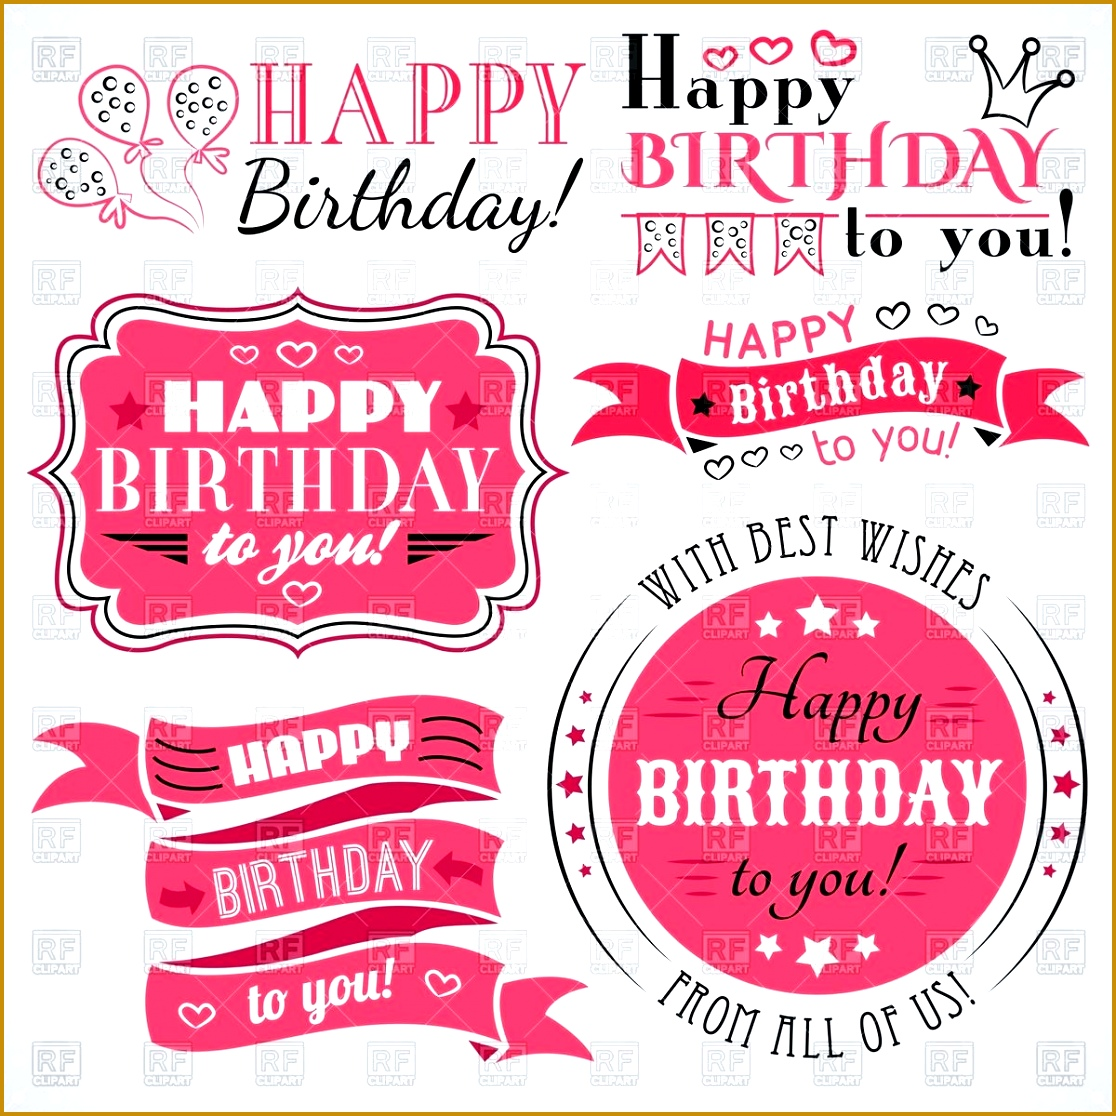 free happy birthday banner templates business flyer template vector clipart image u2013 rfclipart 11161116